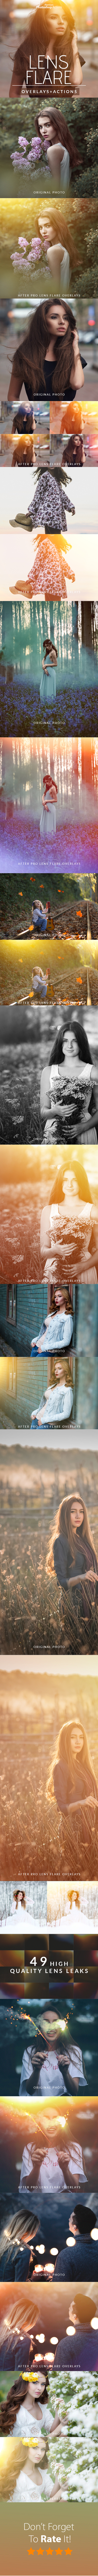 GraphicRiver Pro Lens Flare Photoshop Overlays 20780478